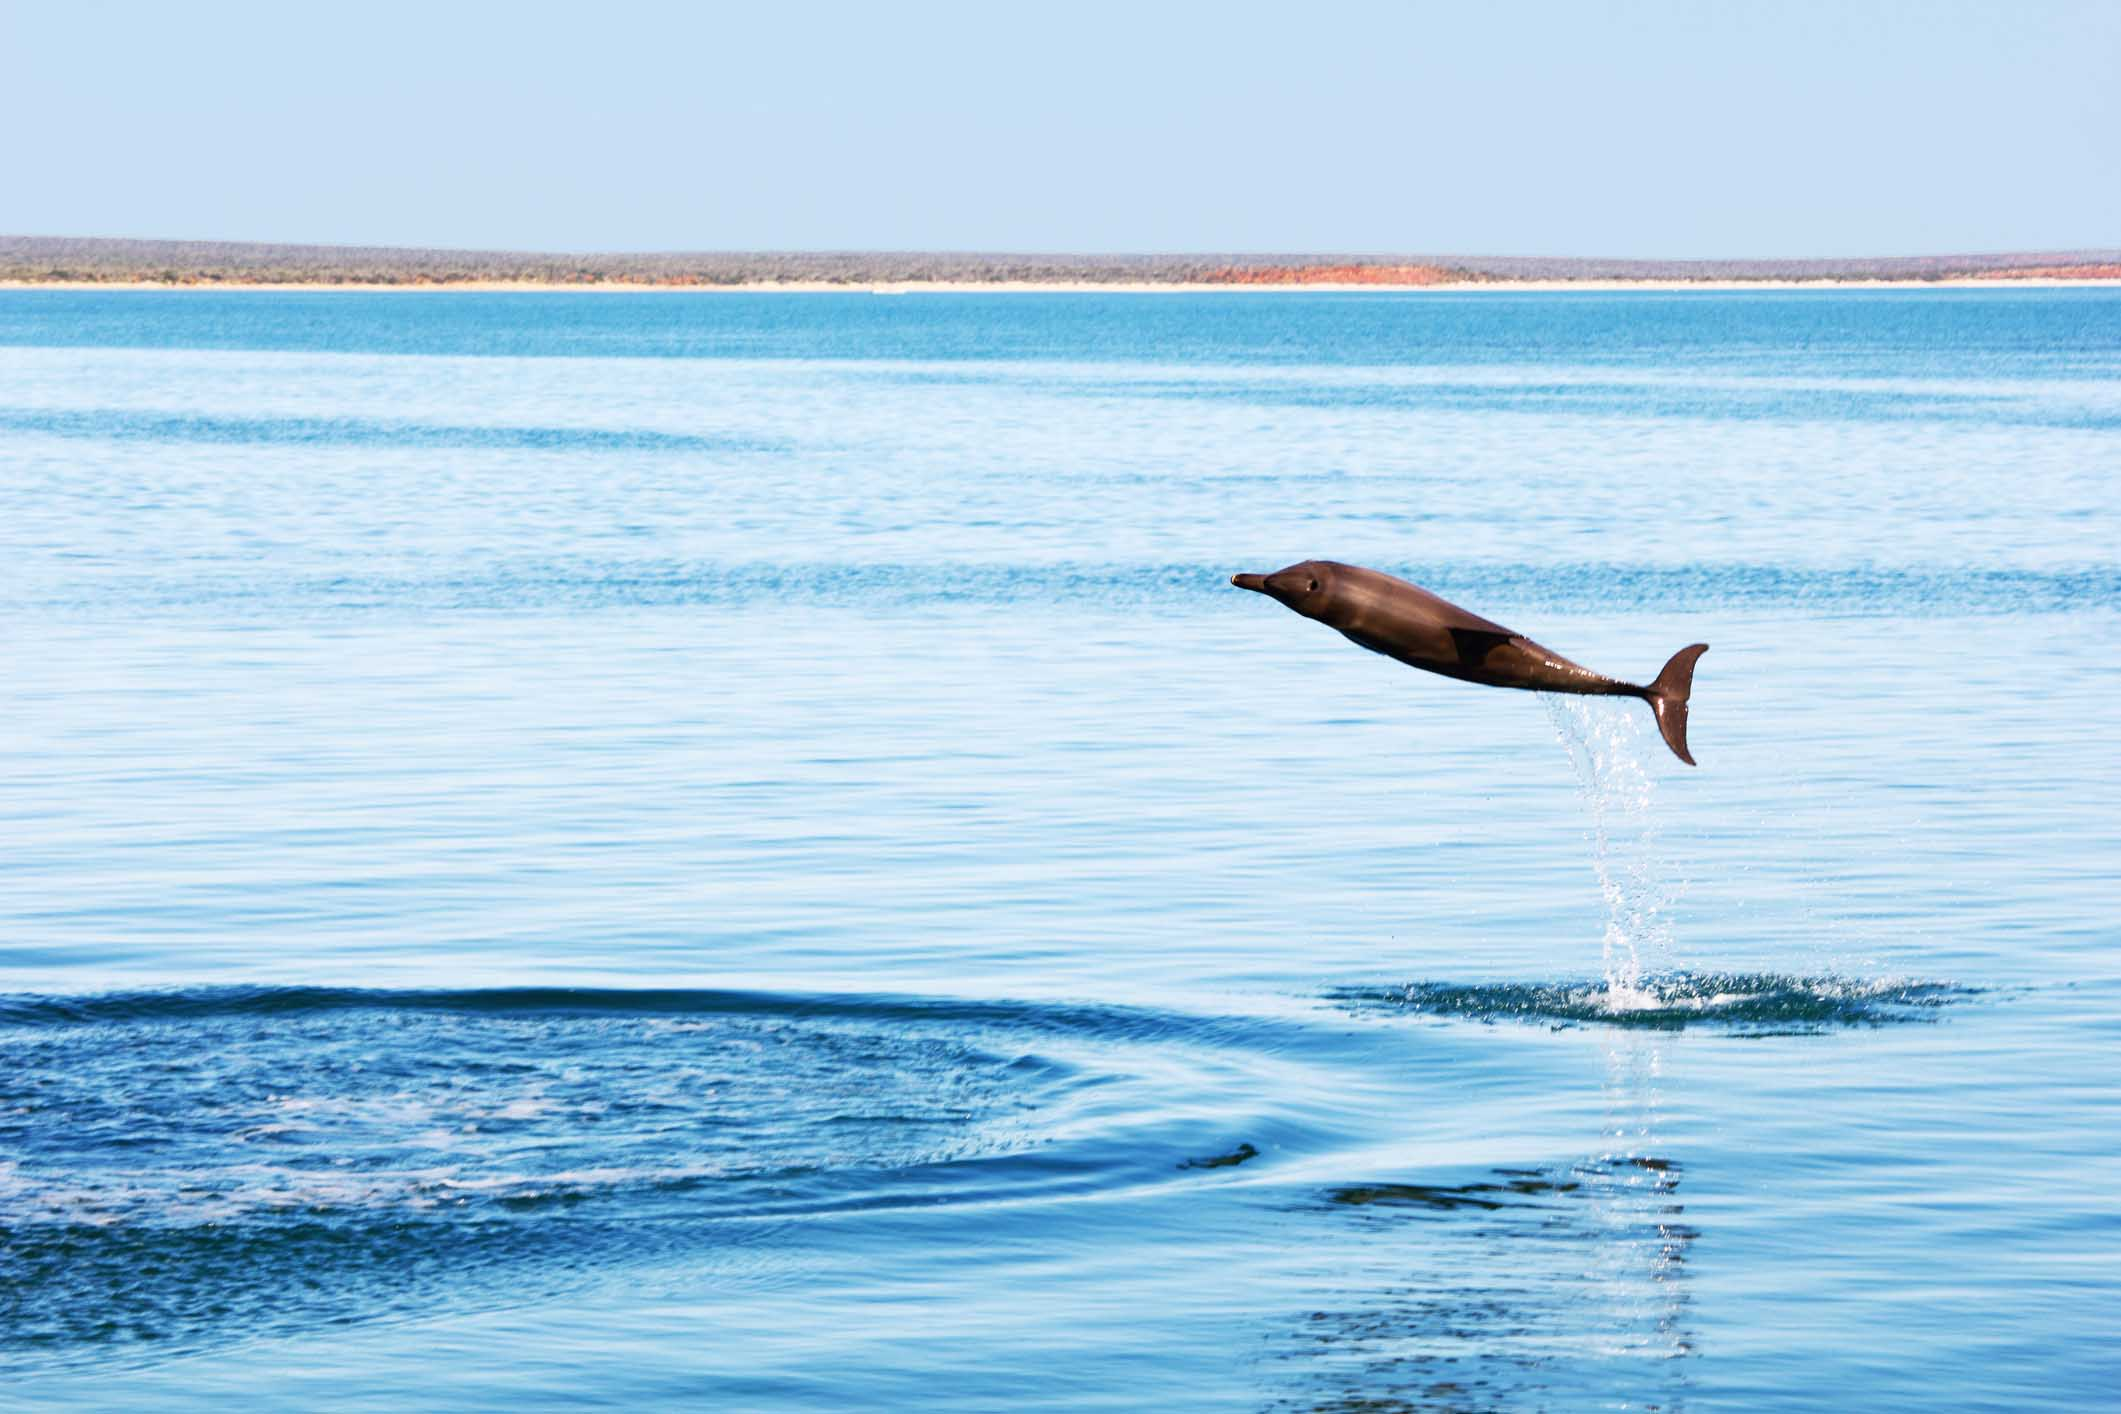 Bottlenose Dolphin jumping joyfully out of the Water, Indian Ocean, Monkey Mia, Western Australia